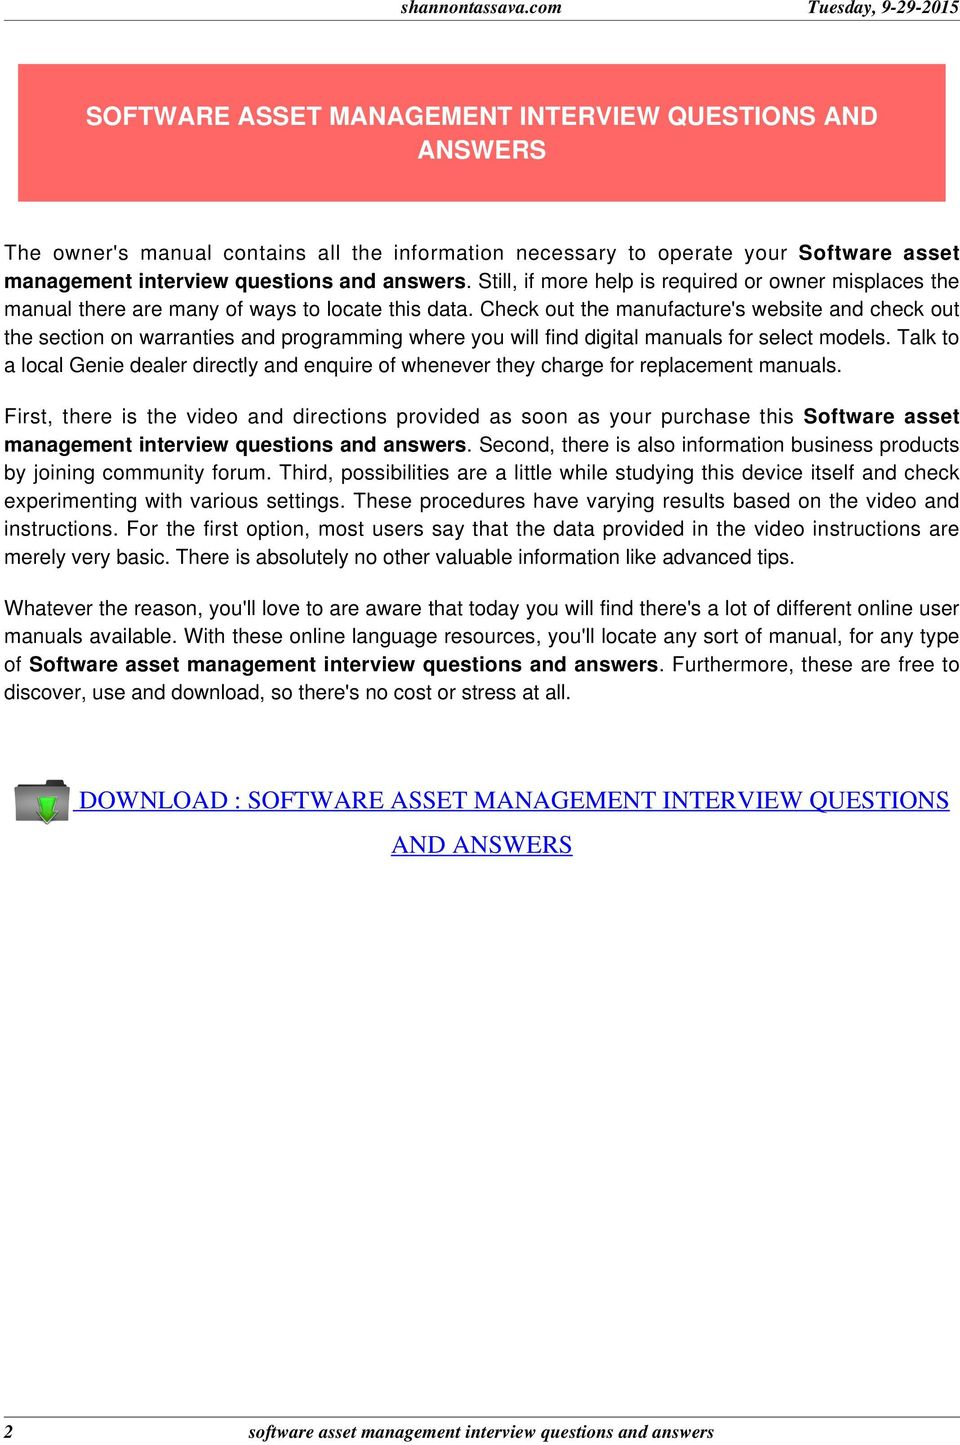 software asset management interview questions and answers pdf check out the manufacture s website and check out the section on warranties and programming where you